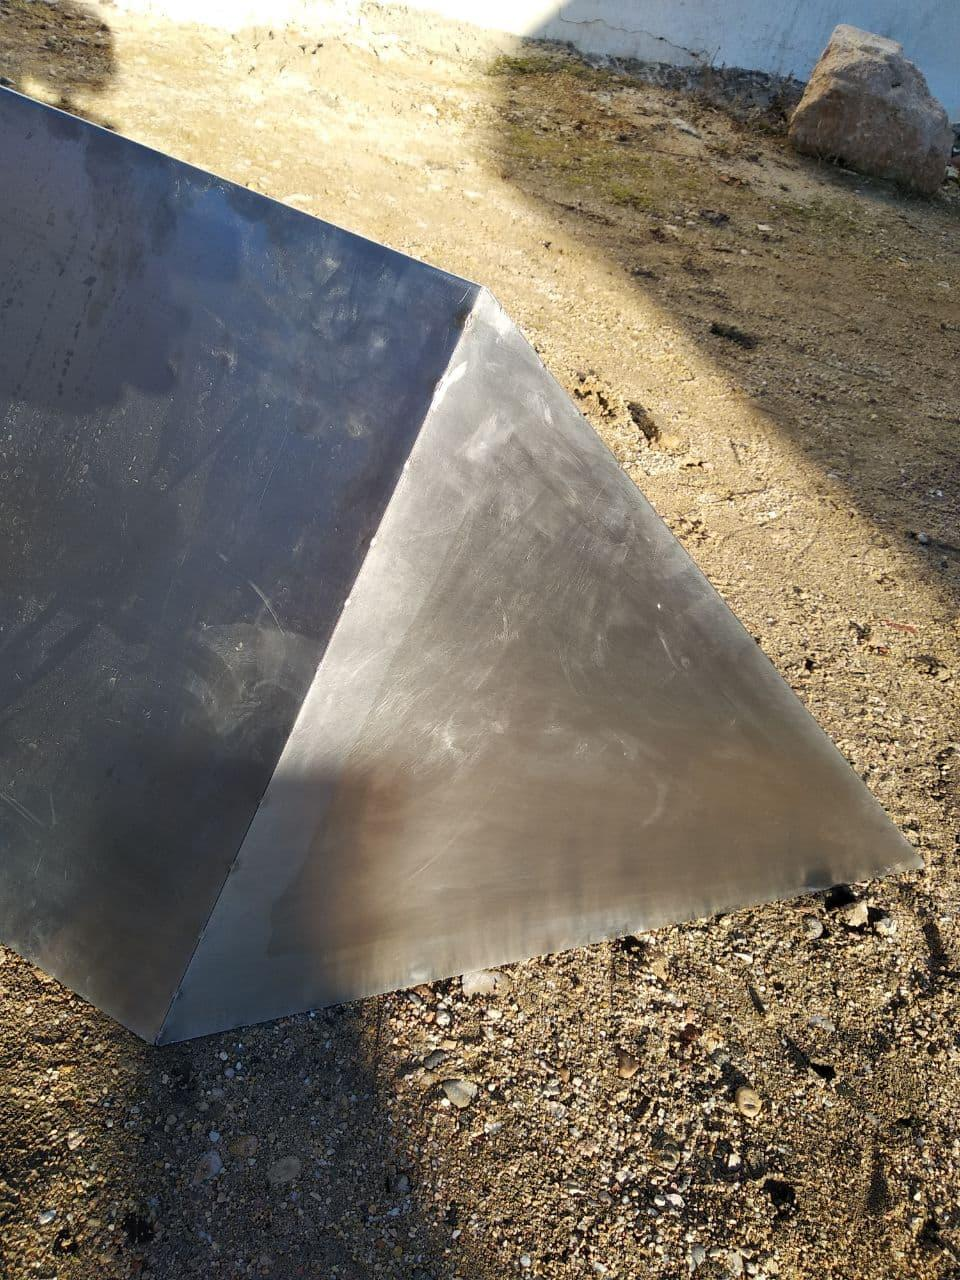 Top of the Monolith. There's an inner darker triangle, maybe a result of the welding.